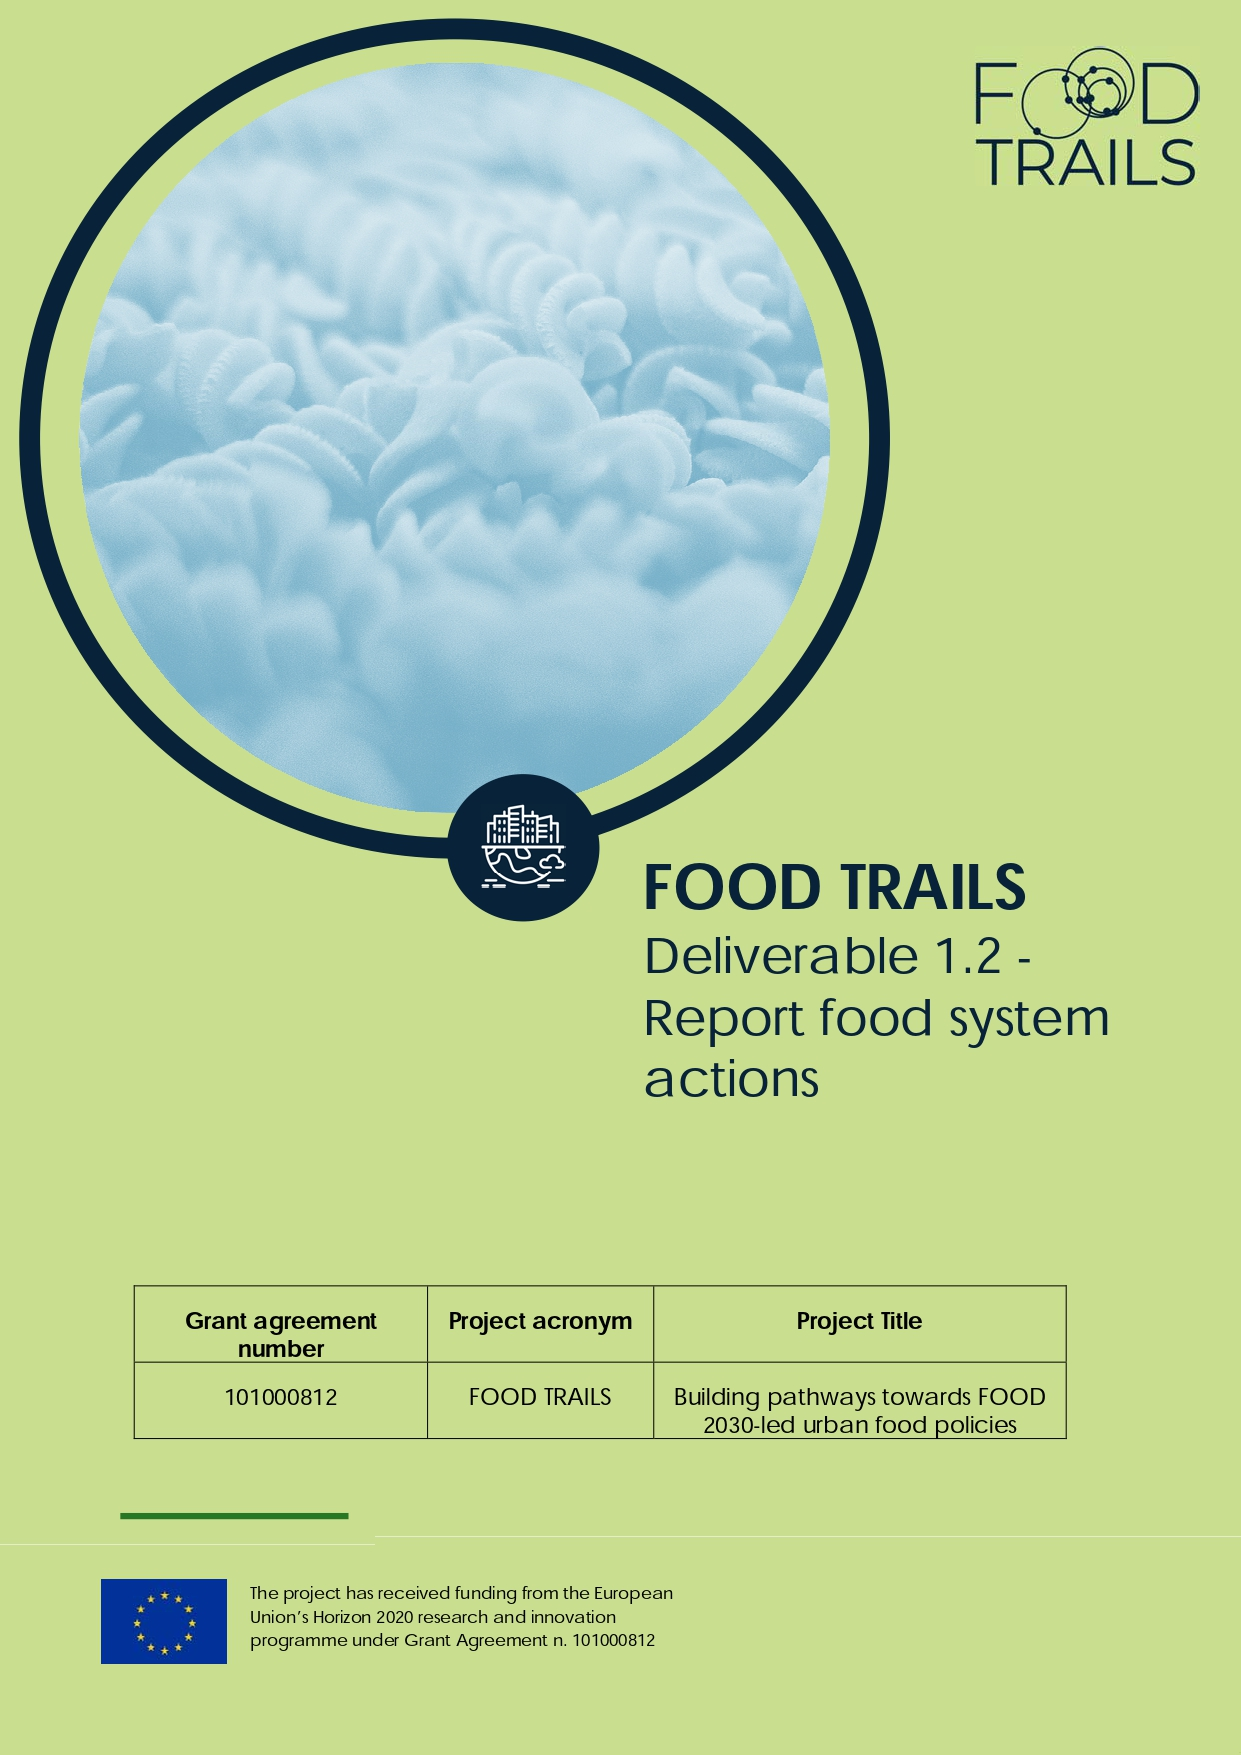 Report food system actions